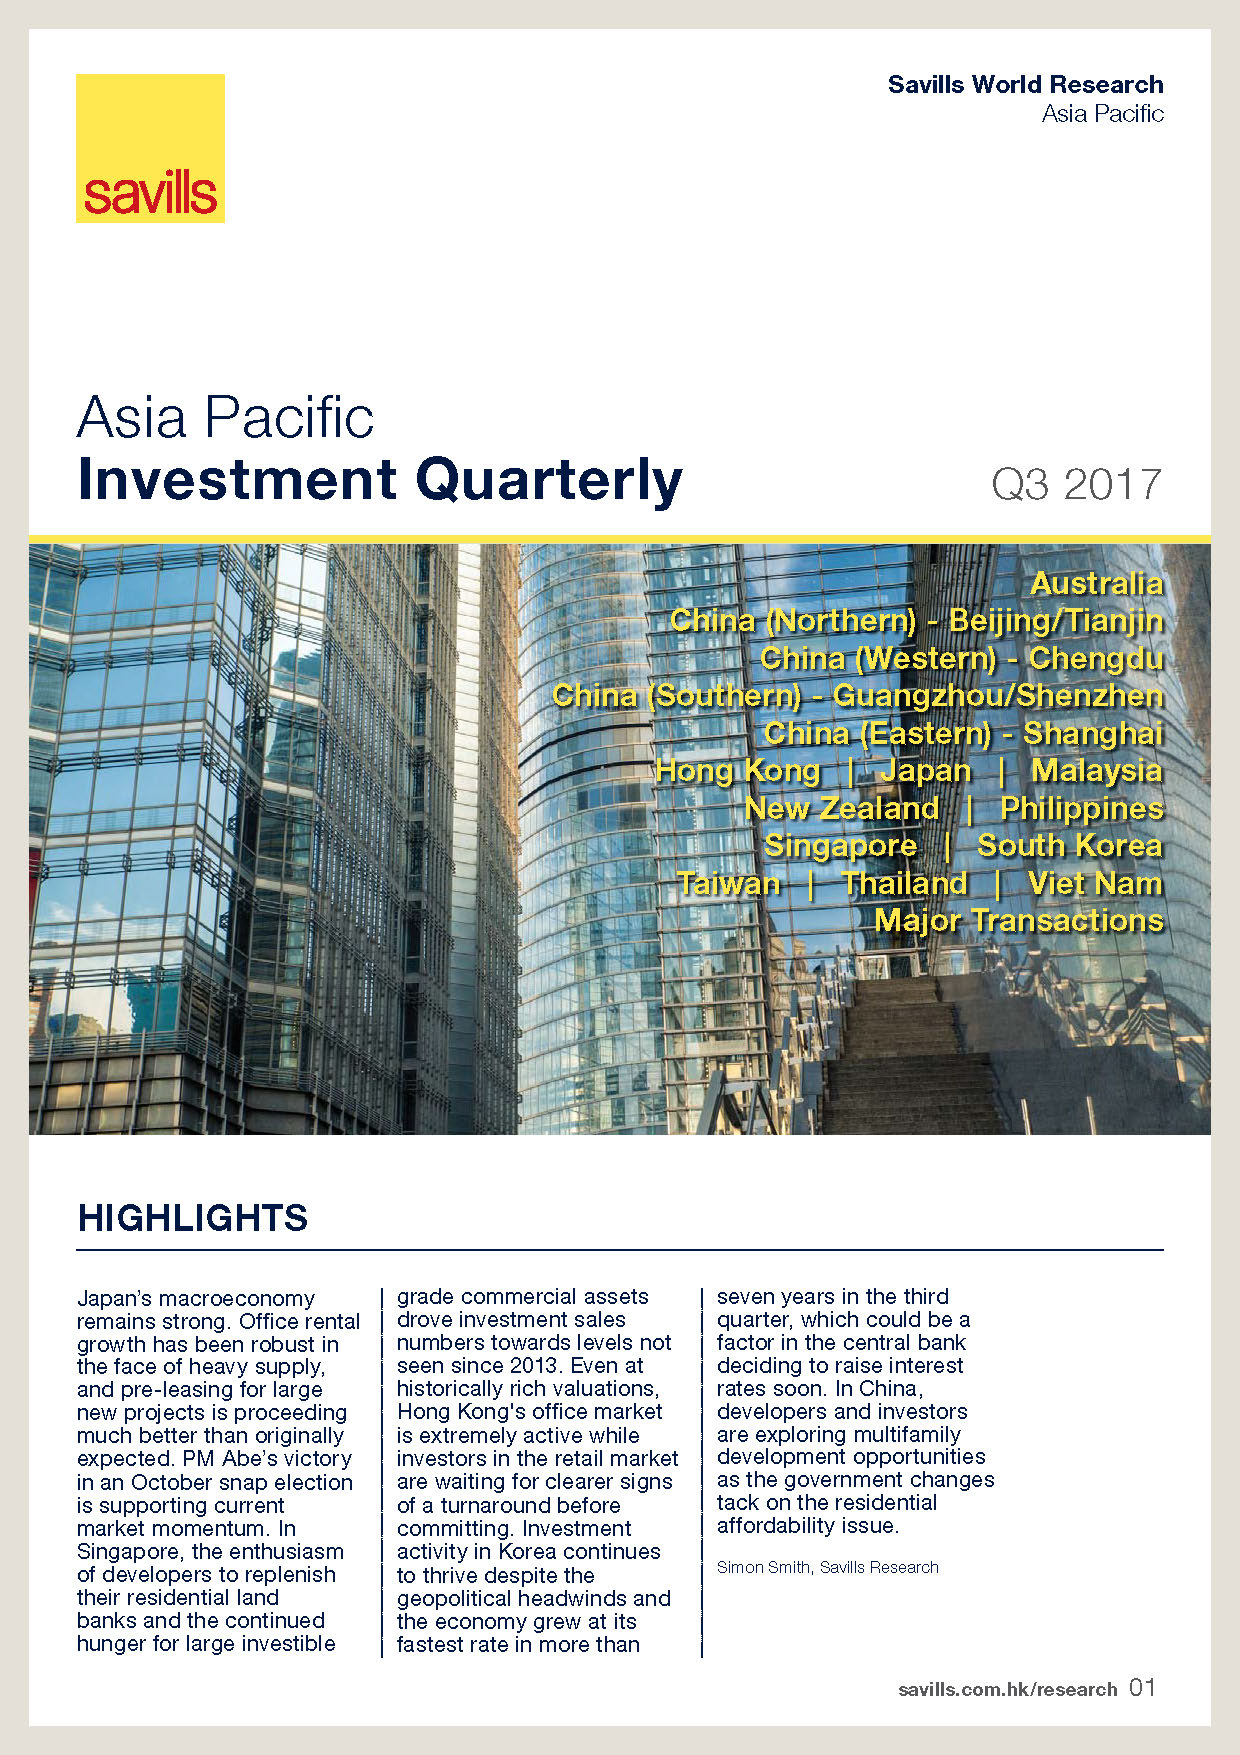 The Asia Pacific Investment Quarterly Q3 2017